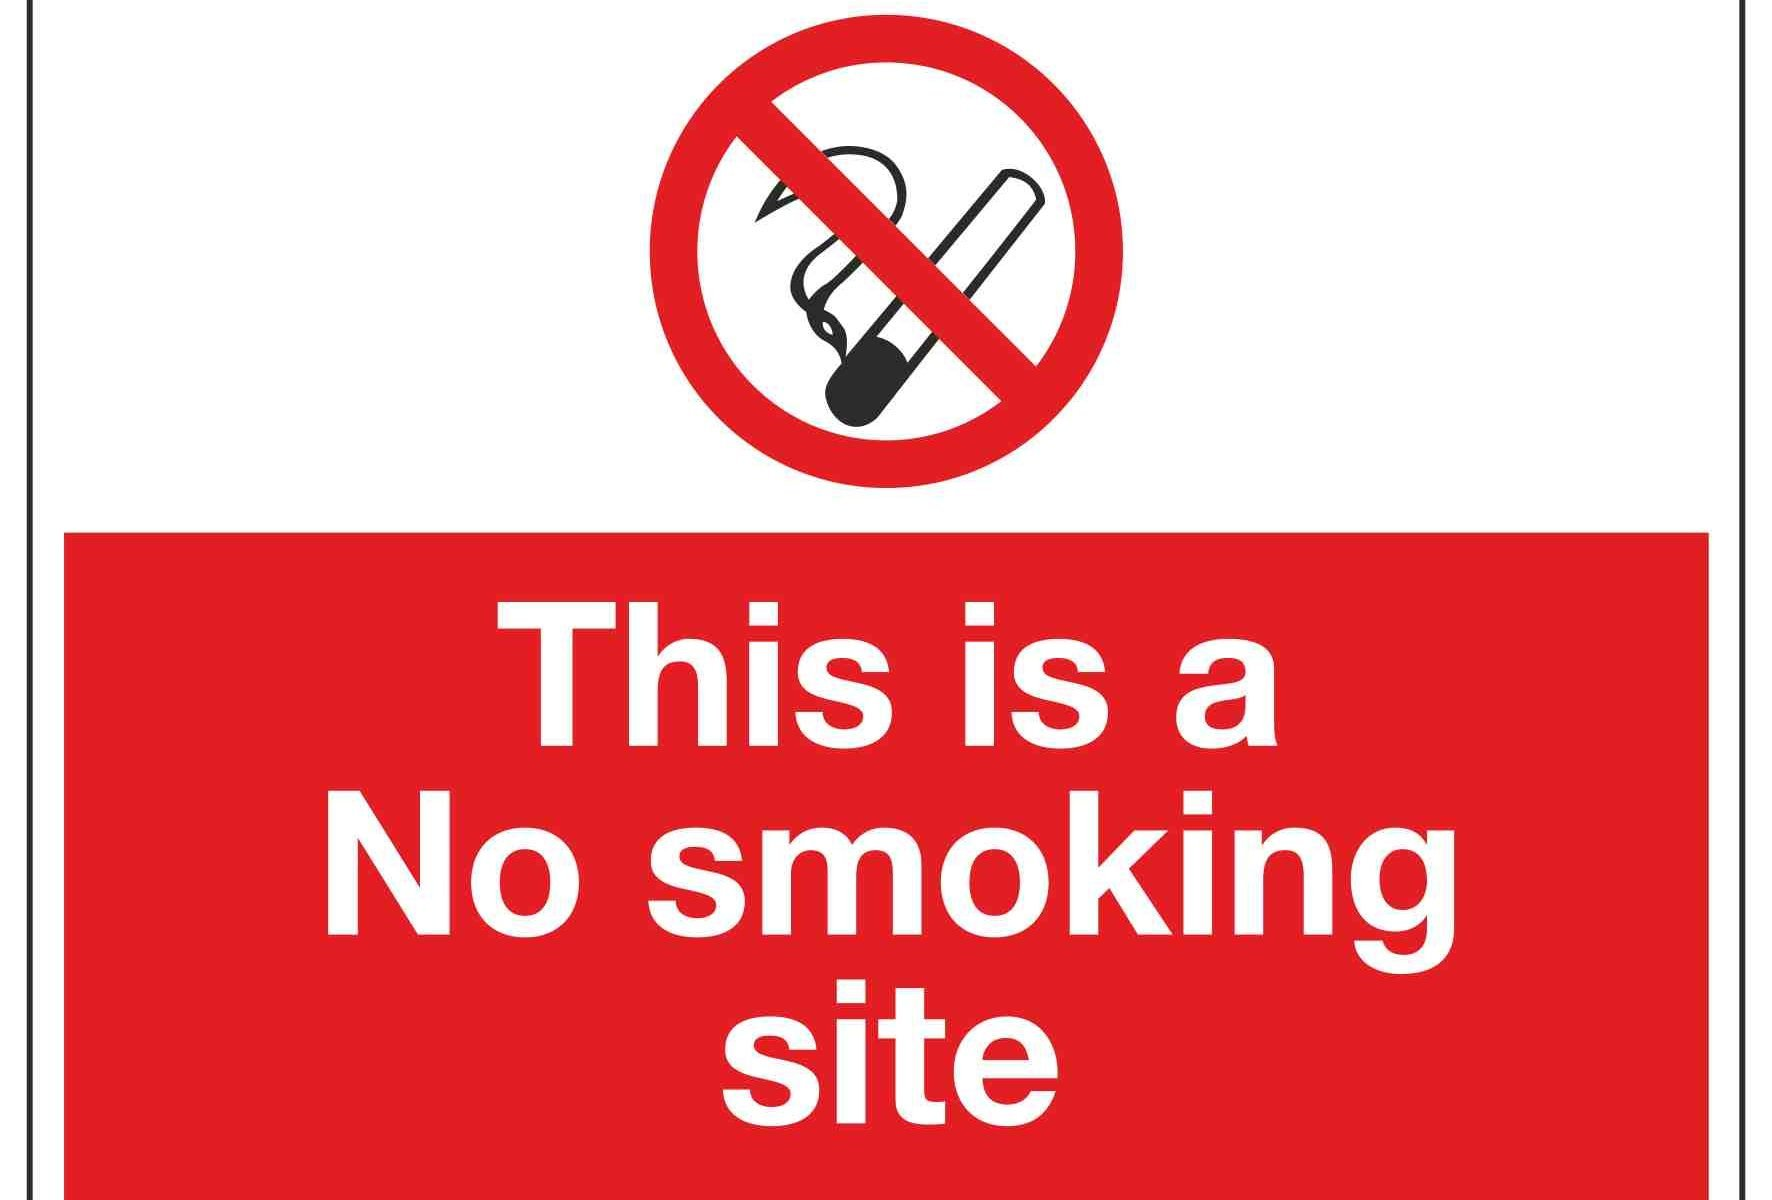 This is a No smoking site